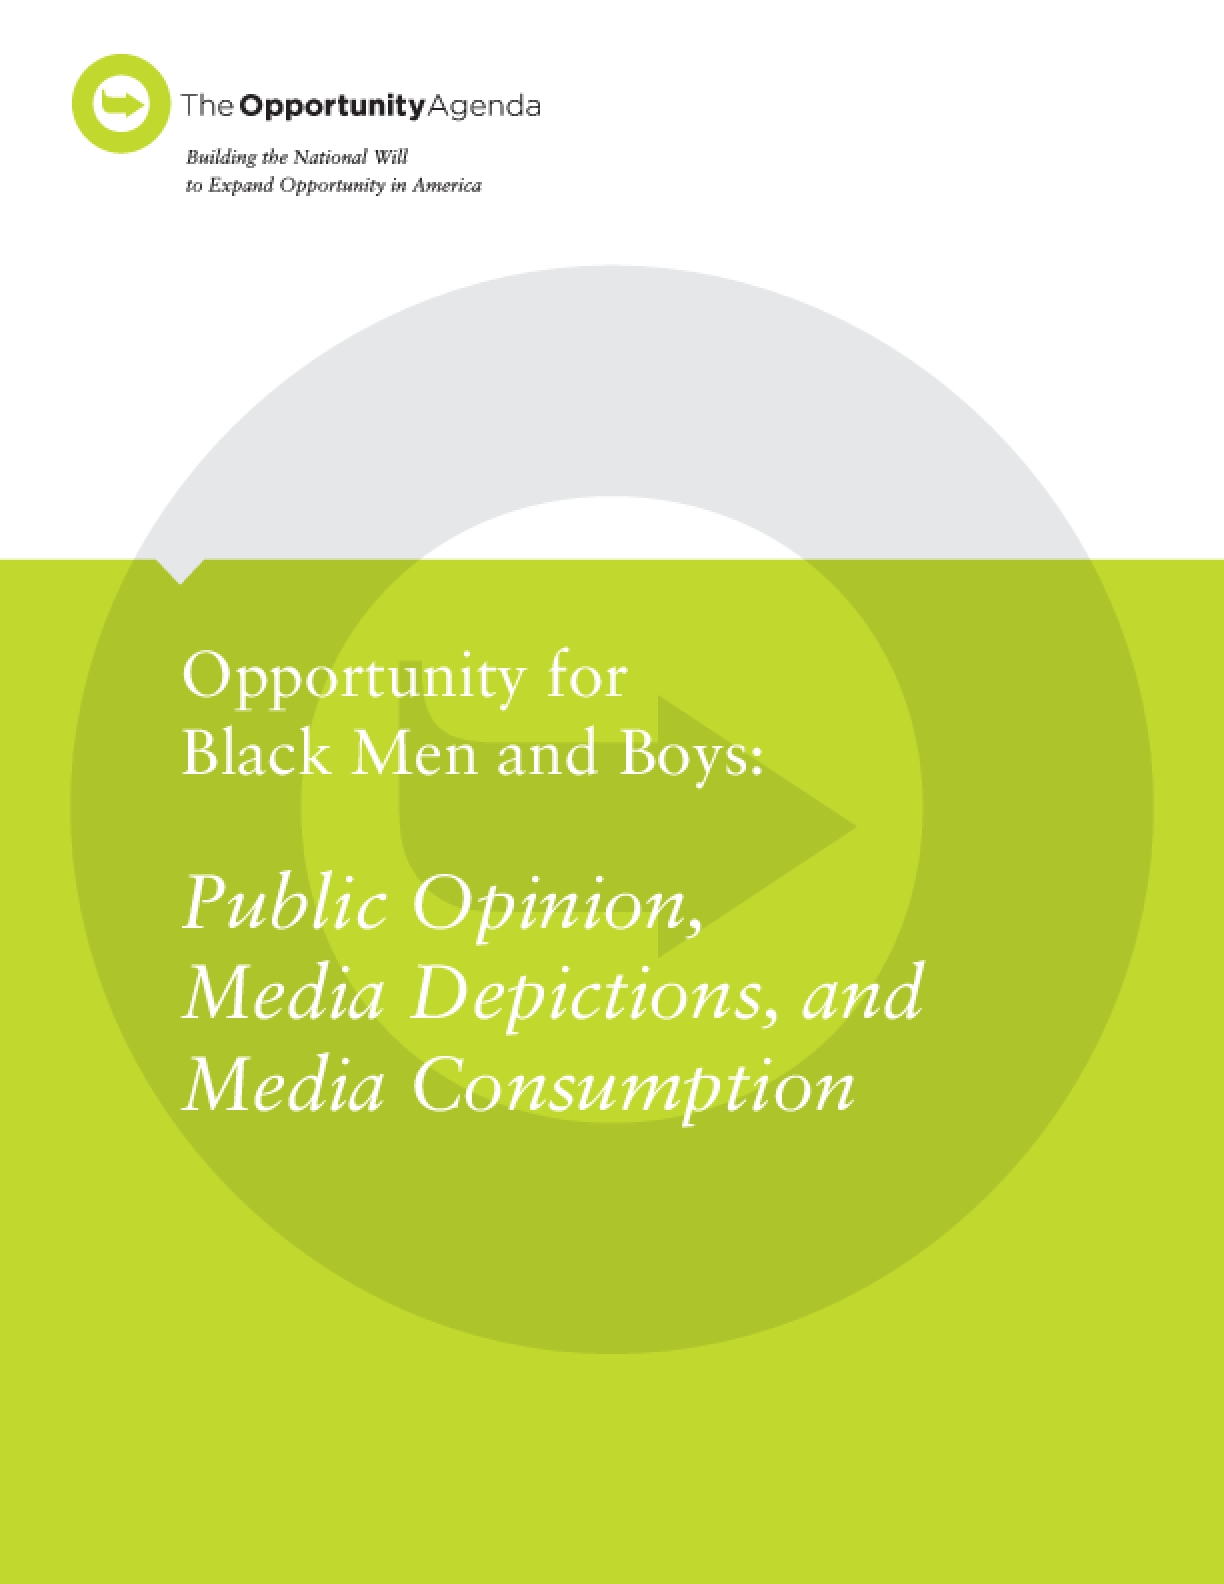 Opportunity for Black Men and Boys: Public Opinion, Media Depictions, and Media Consumption